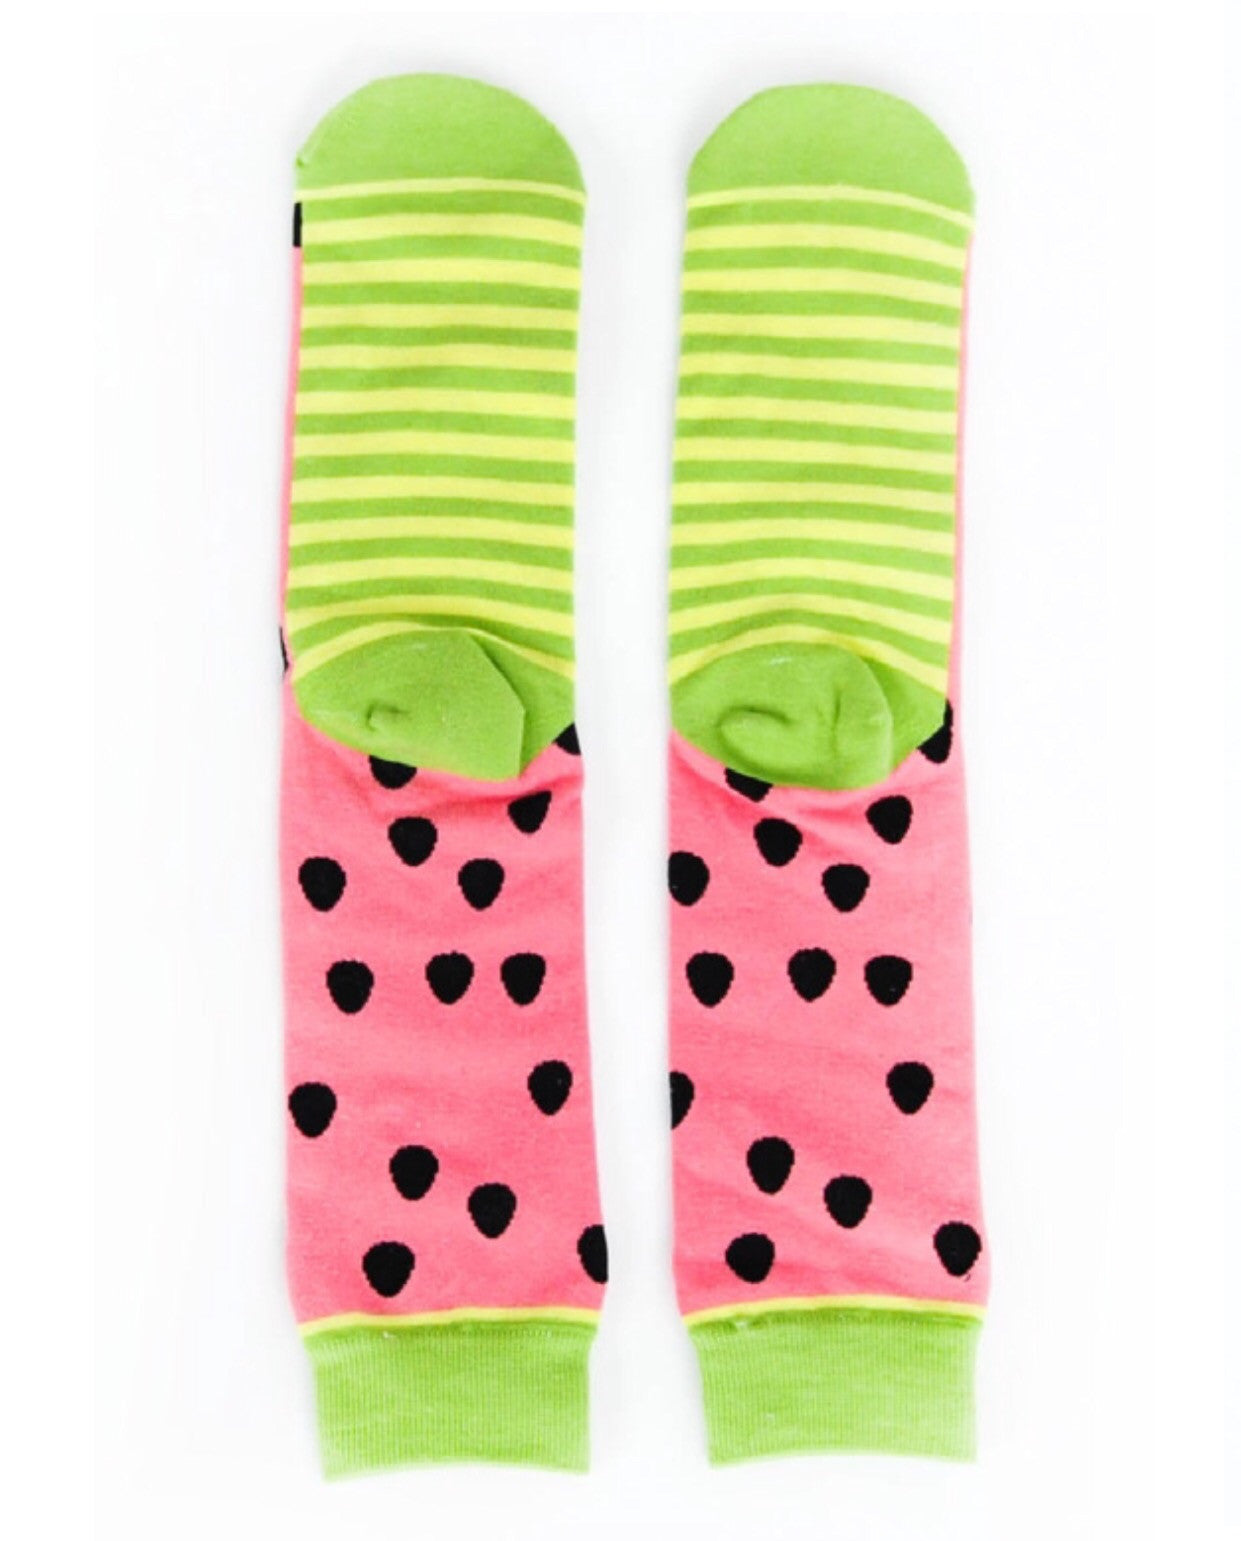 Socks: Watermelon